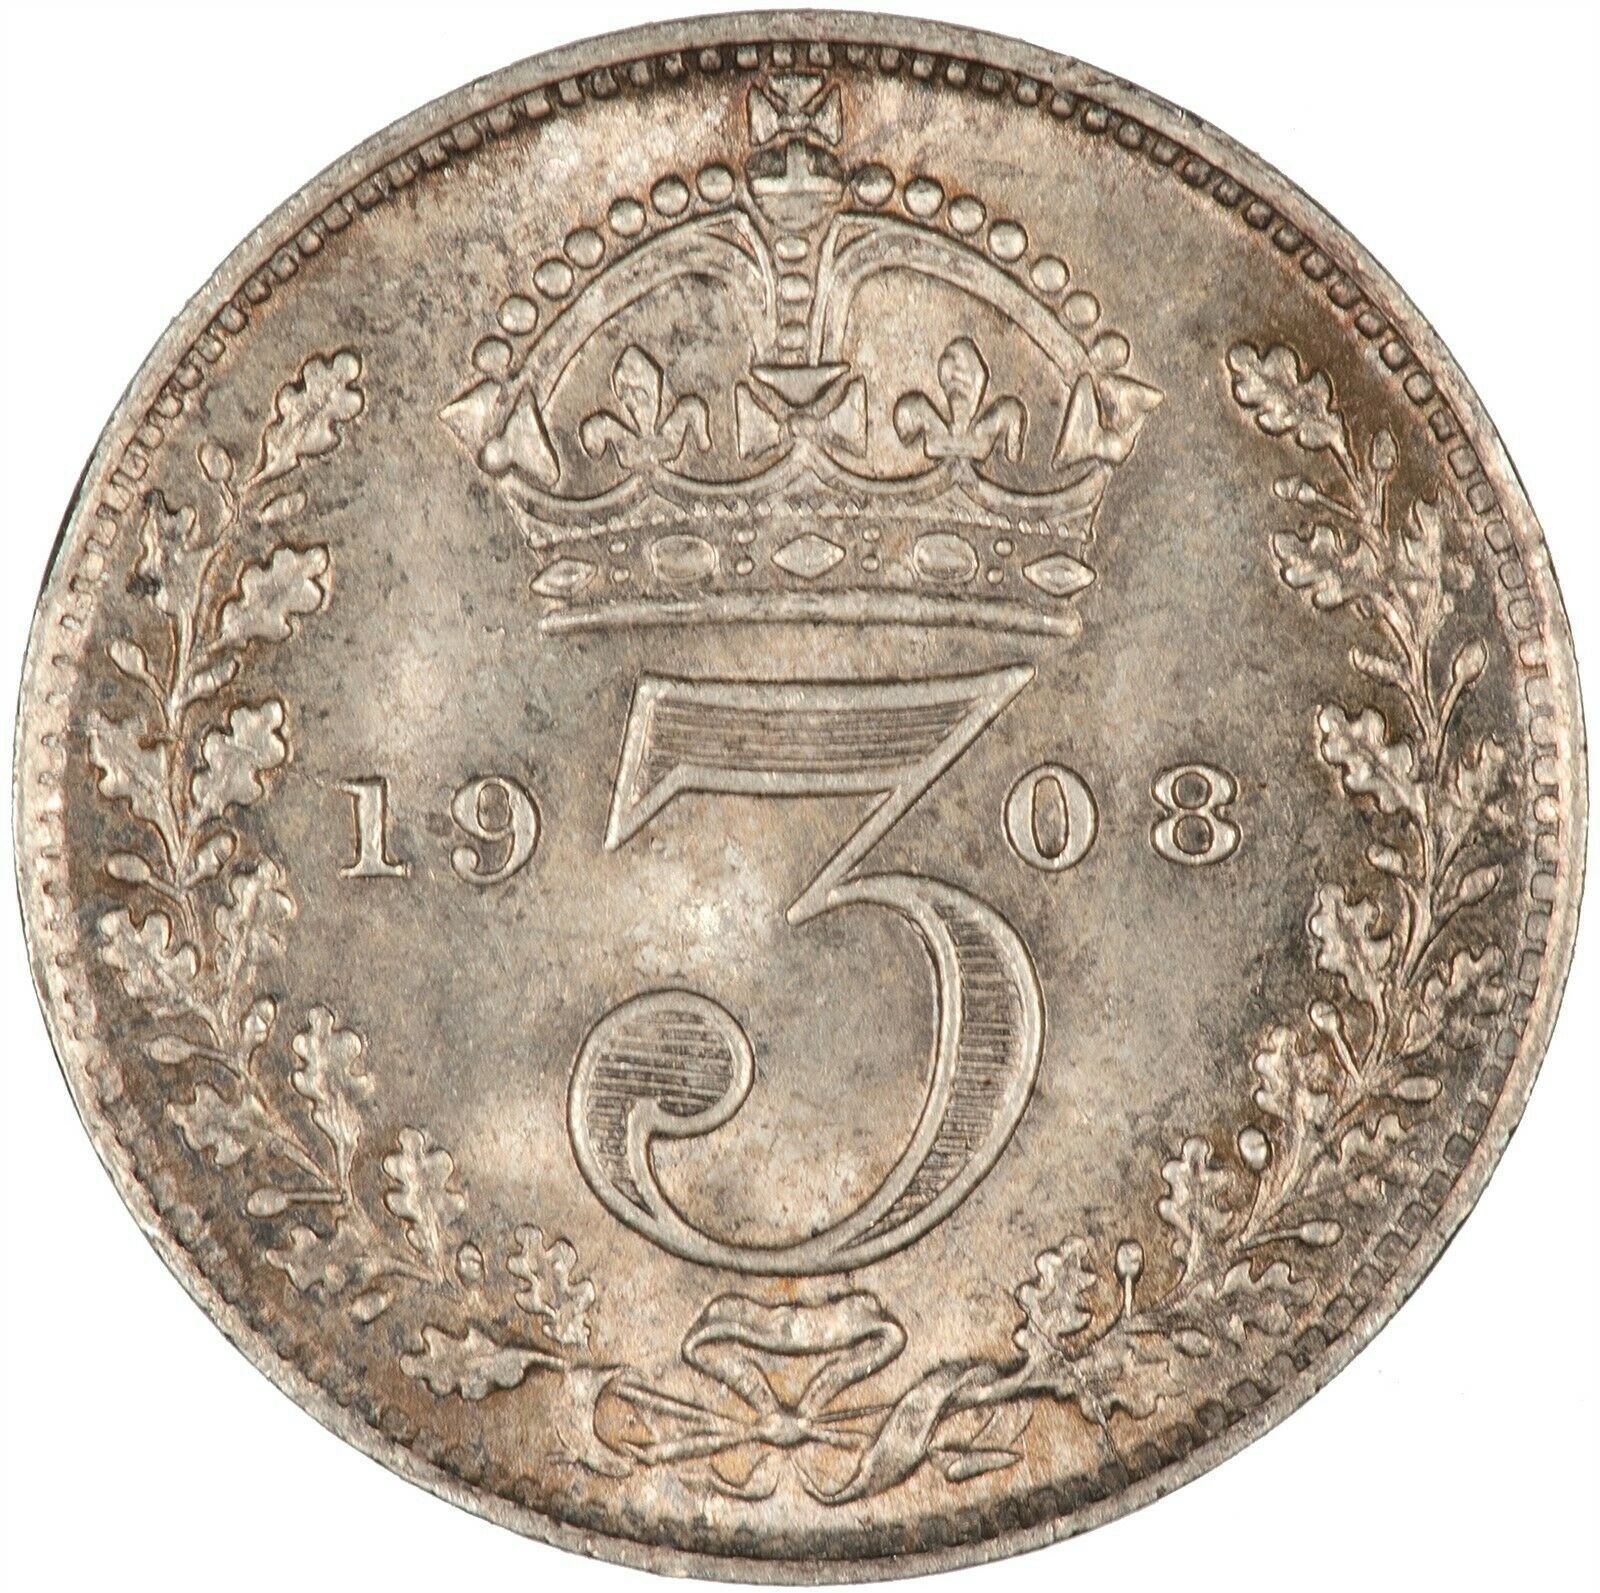 Threepence 1908 (Circulating): Photo Coin - Threepence, Edward VII, Great Britain, 1908